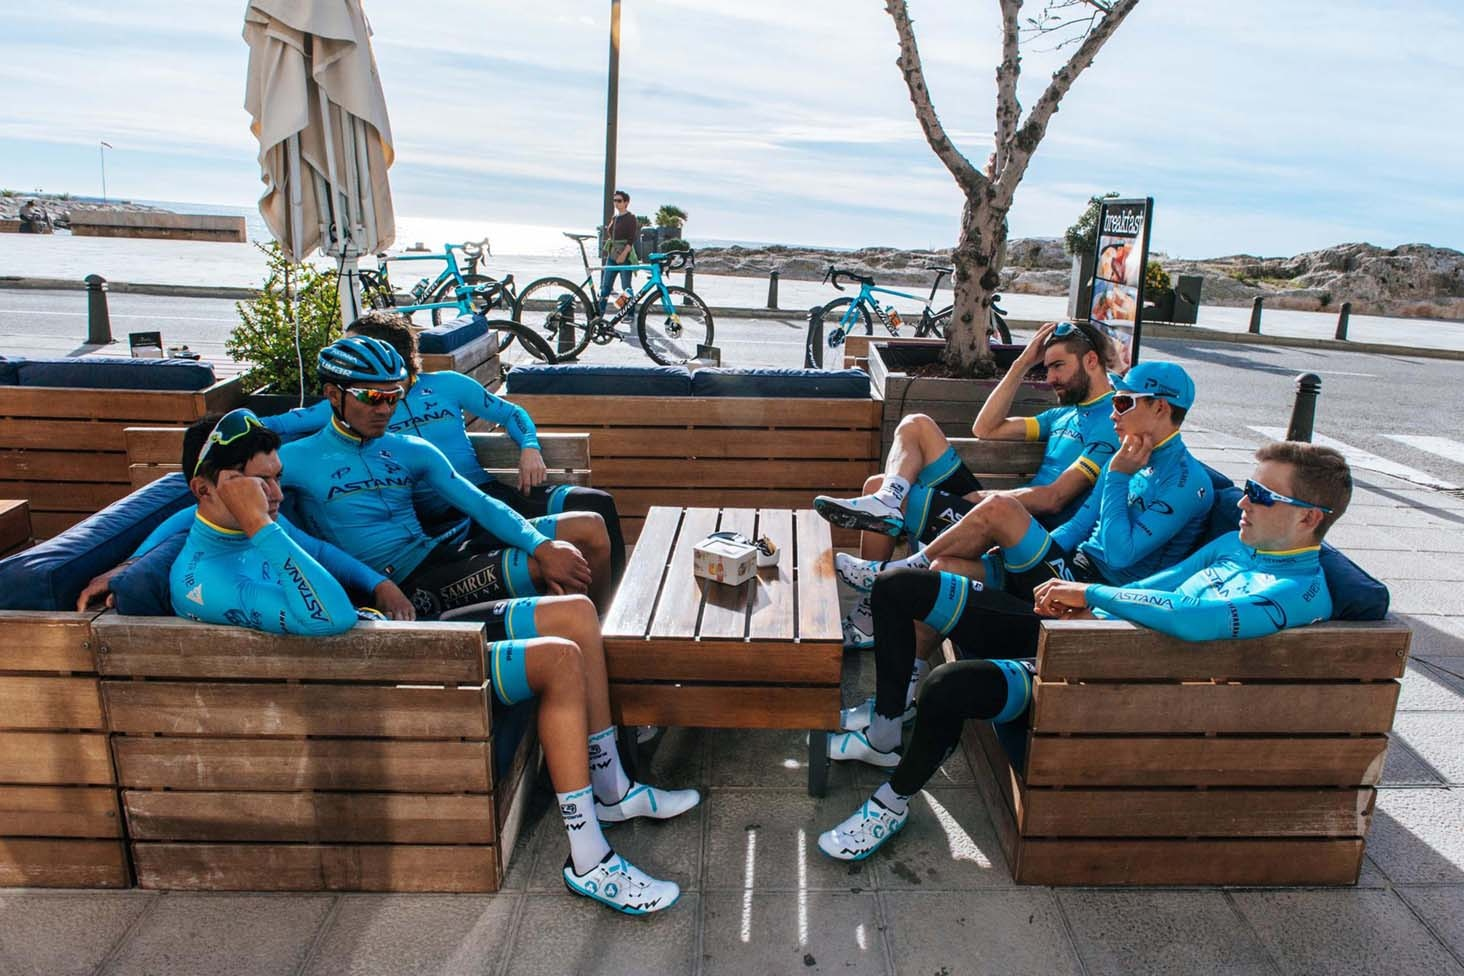 Northwave - Northwave continues to dream big with Astana